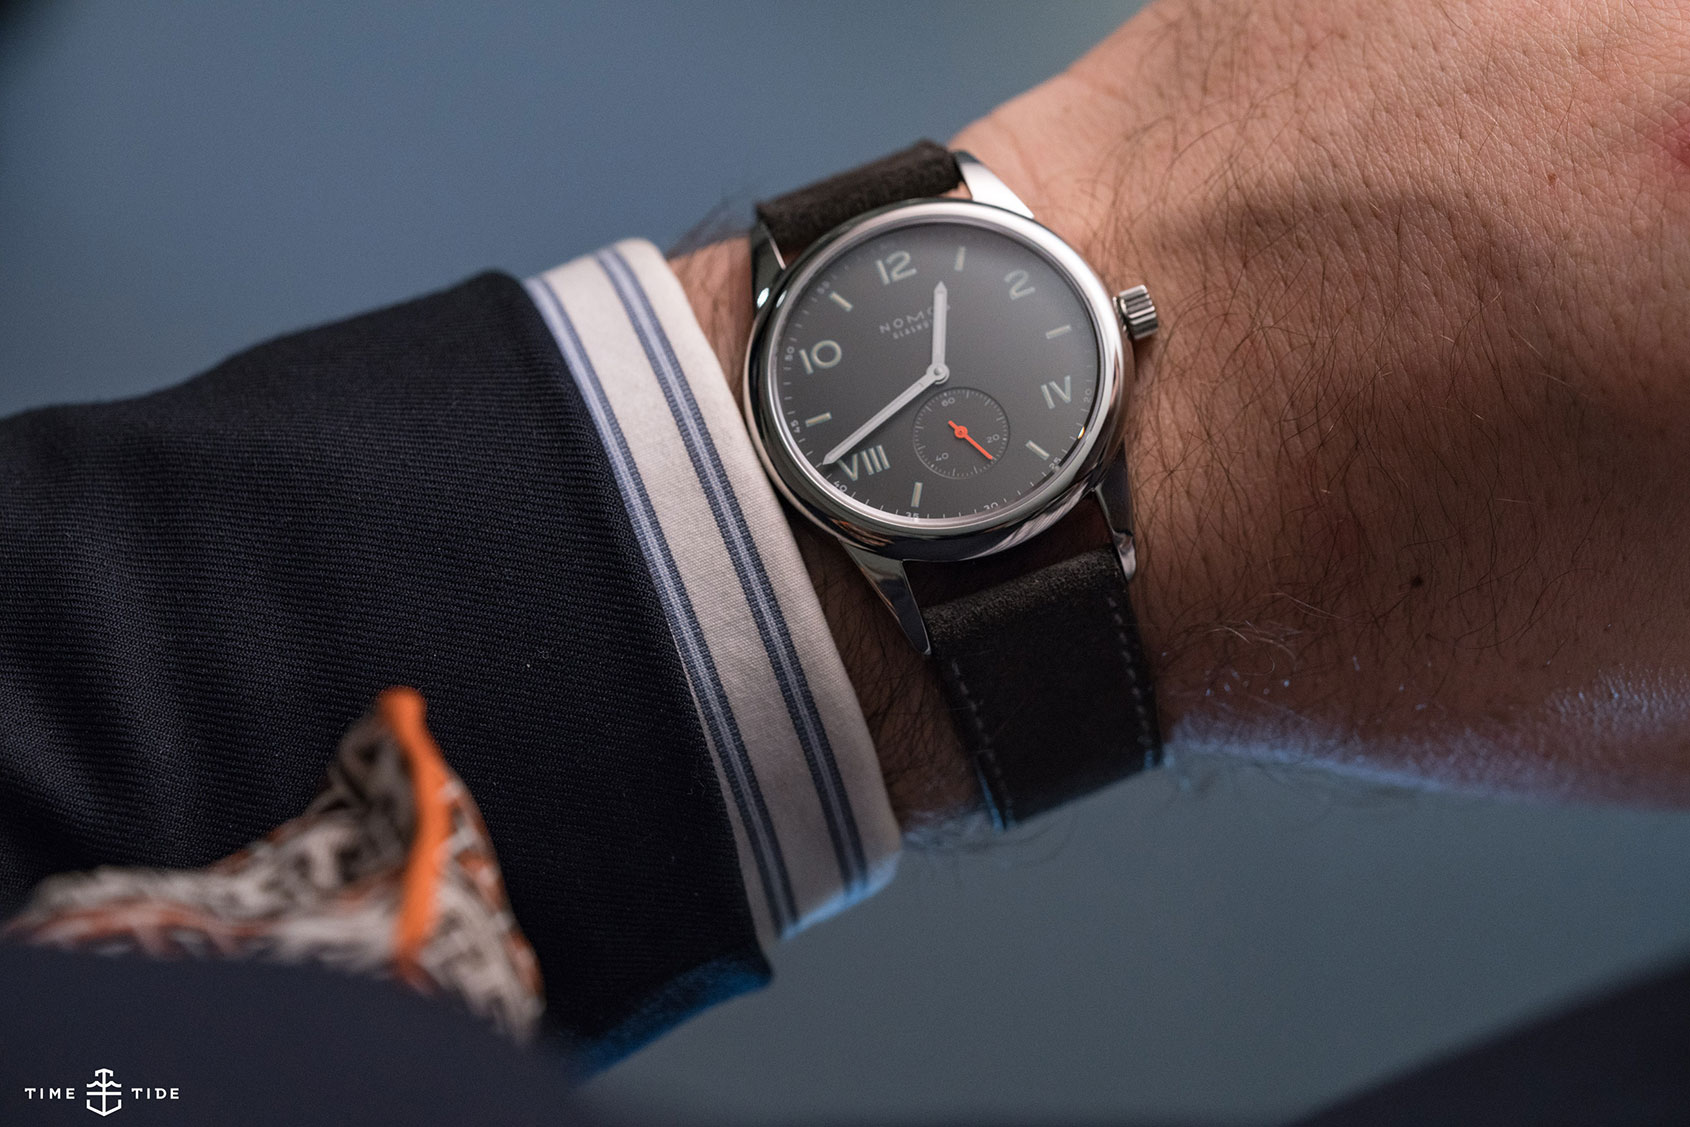 Looking for a great first watch? The Nomos Club Campus could be just the ticket